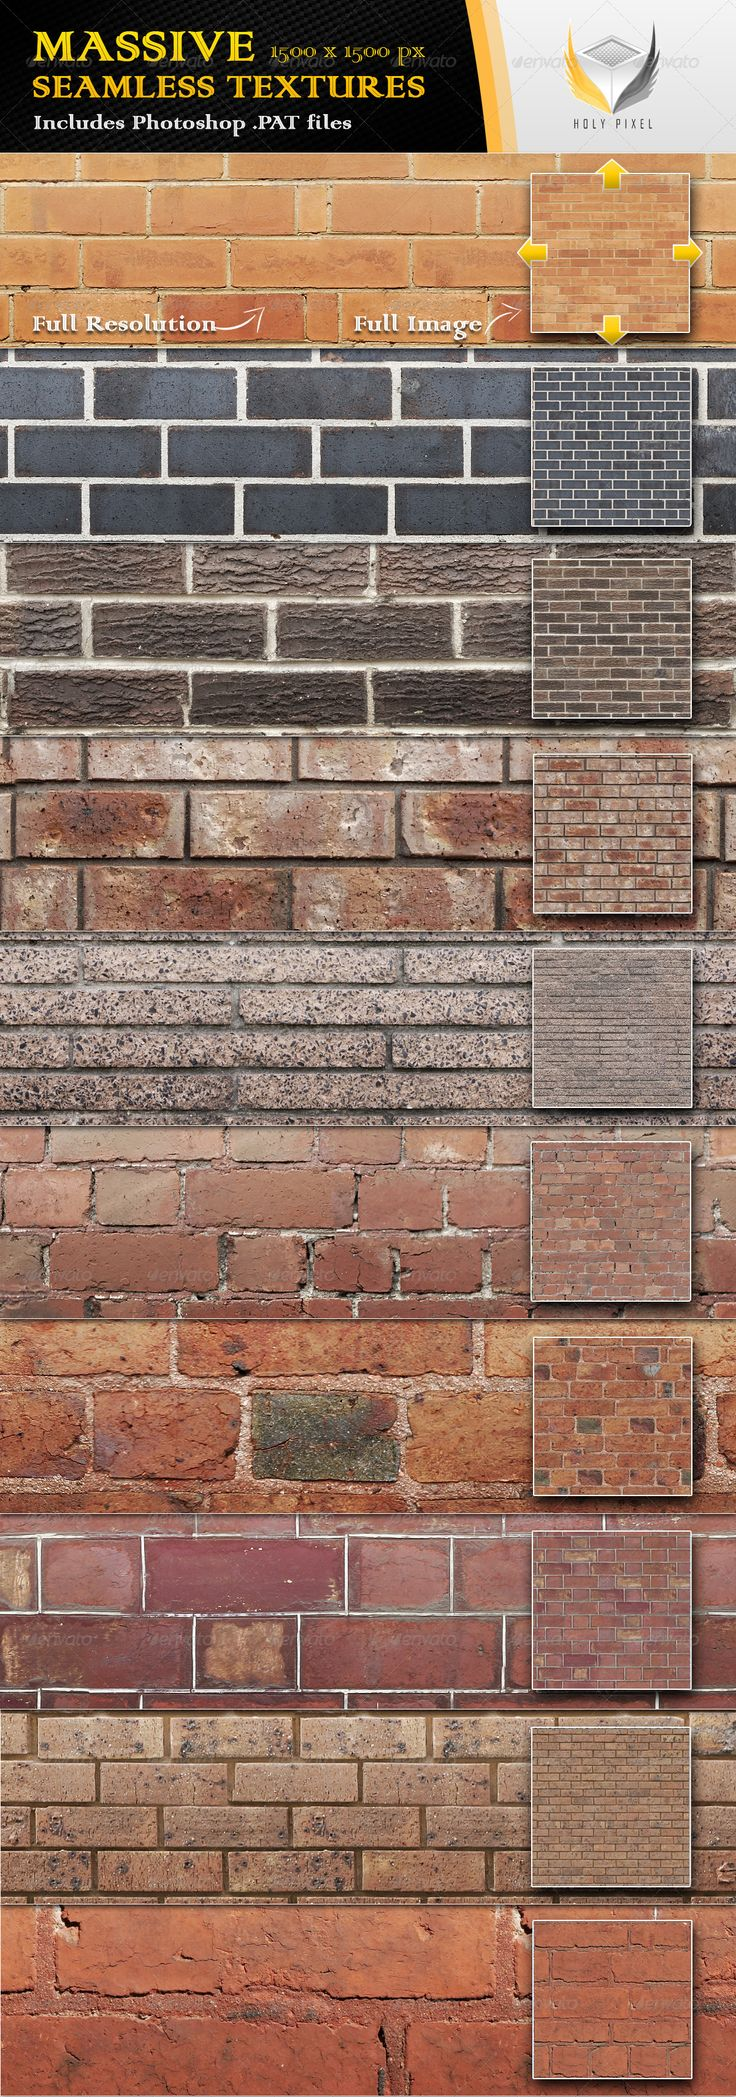 10 Seamless Clean Brick Textures #GraphicRiver All 10 textures in this file have been designed at the massive resolution of 1500×1500px so that you can scale them all the way from close up detail of the content out to a fine repeating pattern. The download itself contains; 10 full color jpg files 1 Photoshop PAT file including 10 patterns A detailed help file for using the .PAT file in Photoshop The textures can be used when designing; Web pages Twitter pages 3D Animation 3D Visualisation…